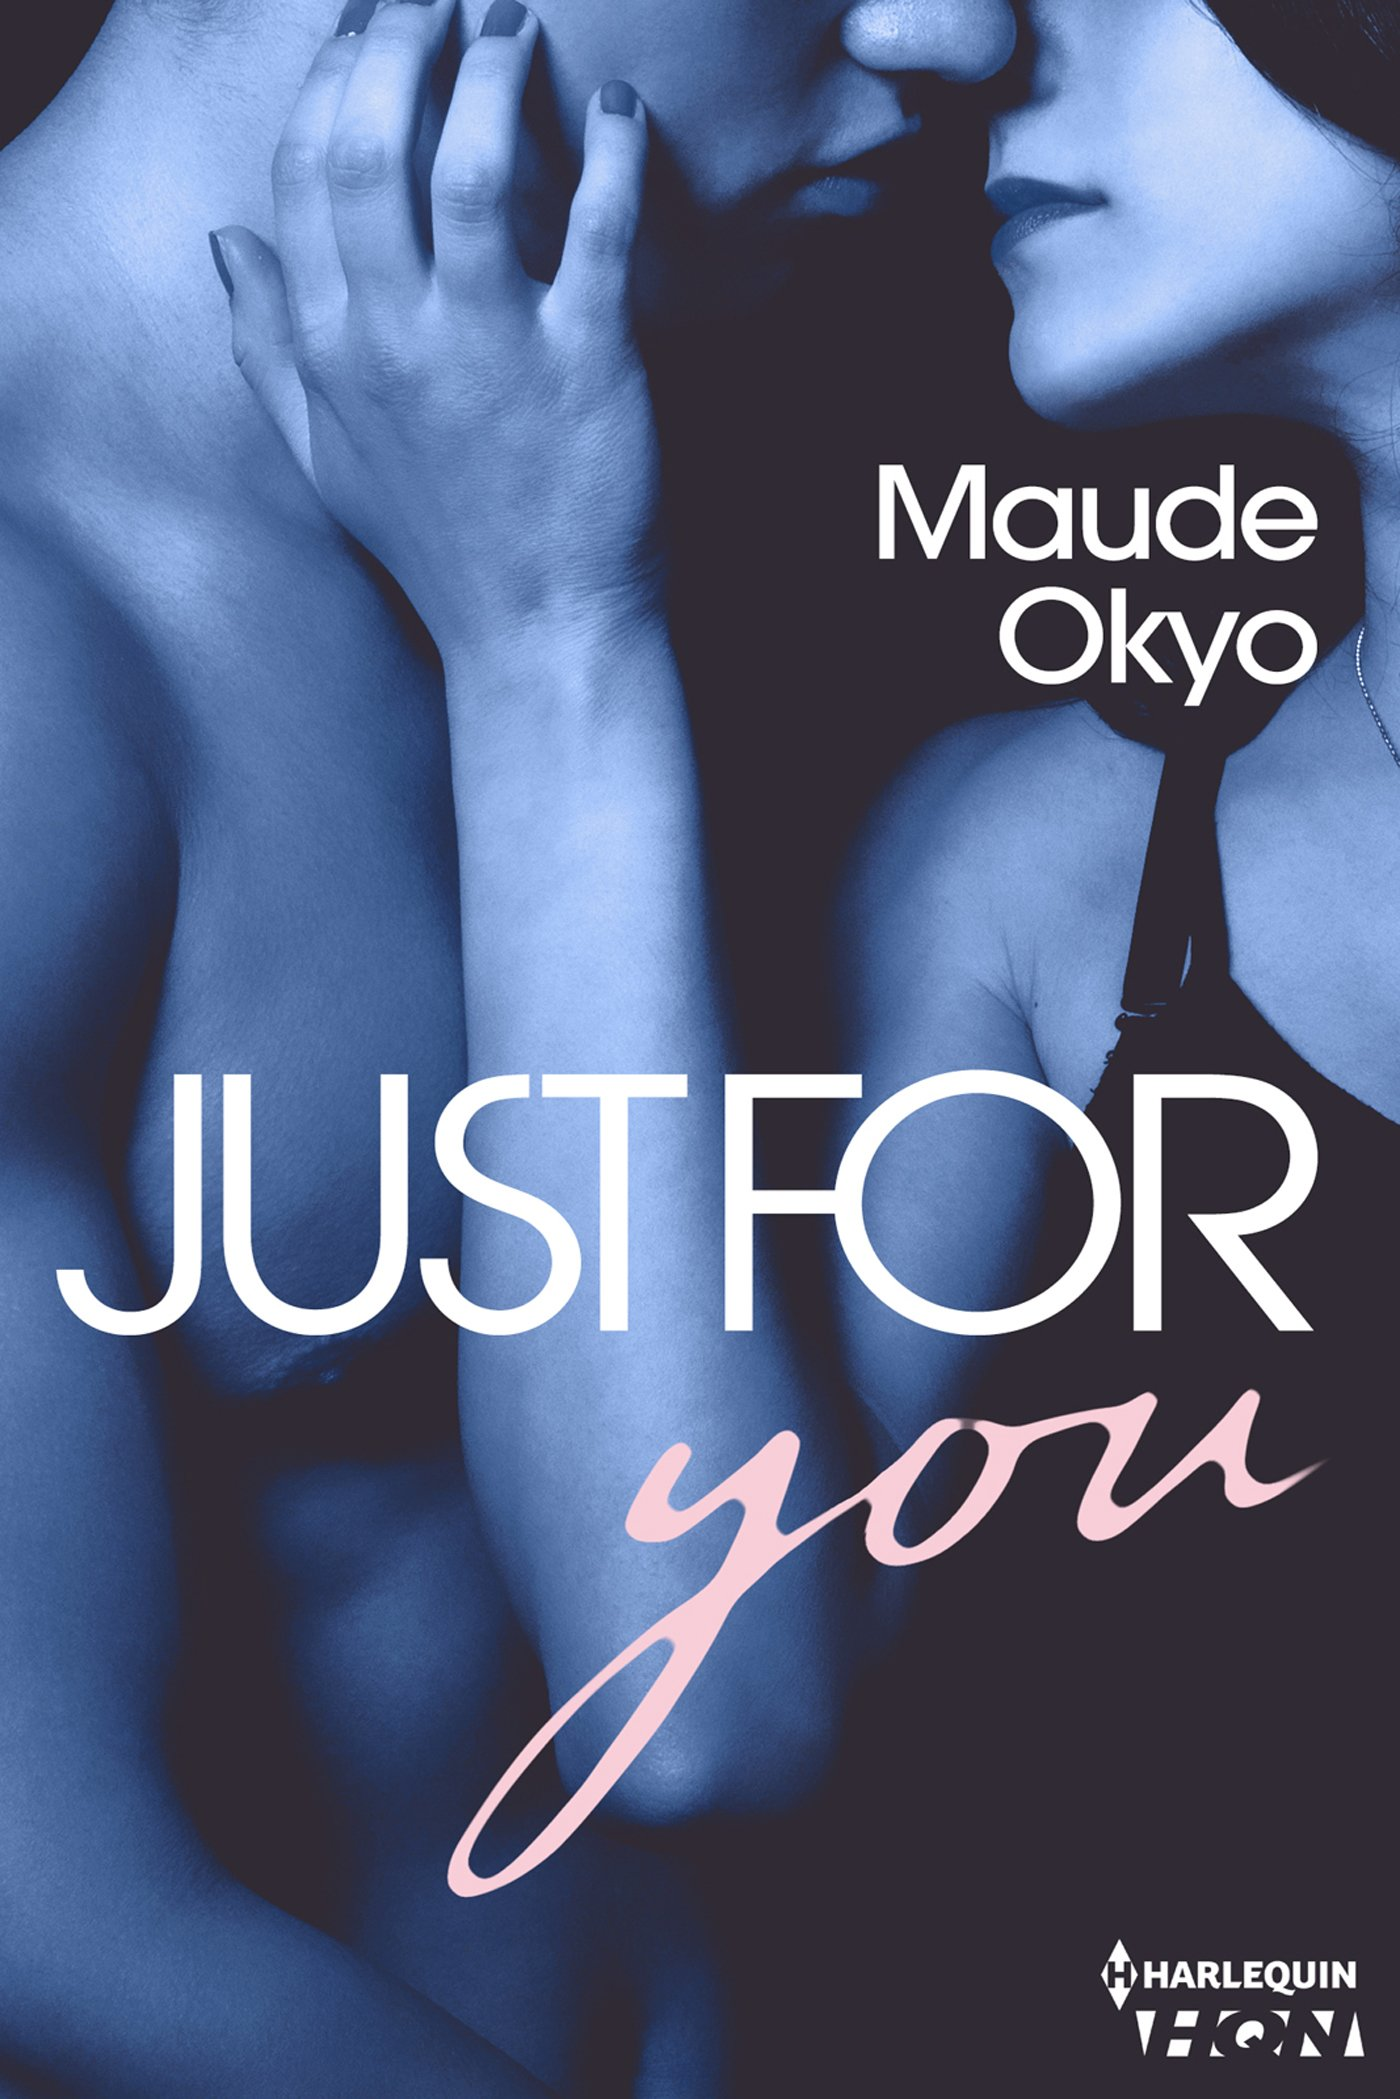 Couverture : Maude Okyo, JUST FOR you, HARLEQUIN HQN